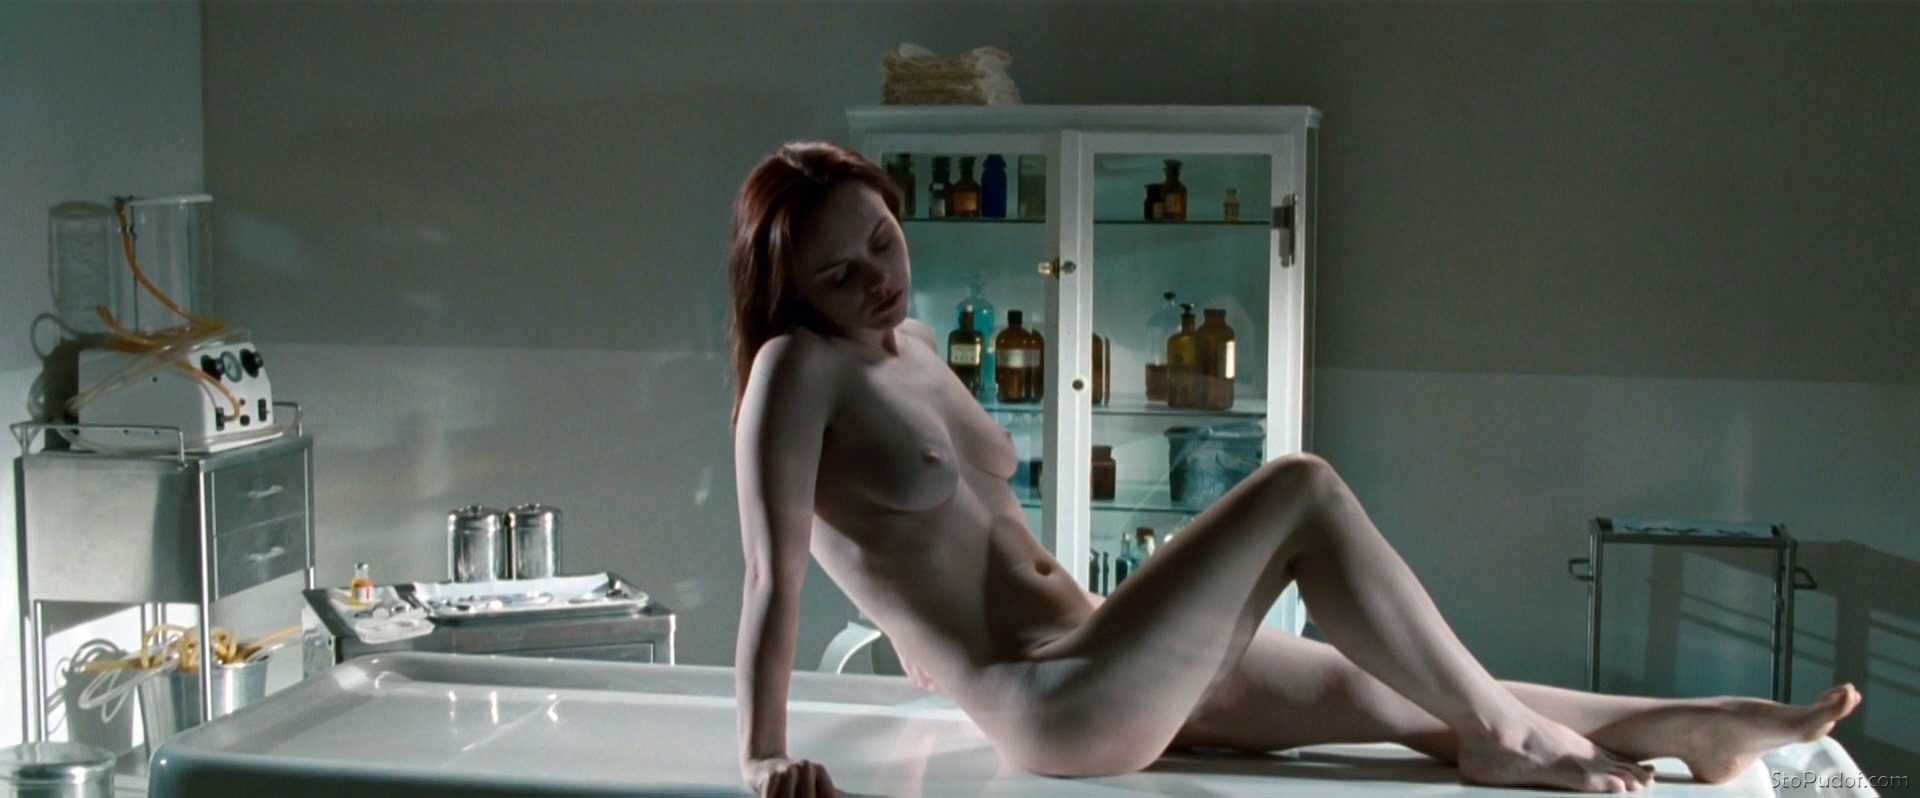 Christina Ricci bare naked - UkPhotoSafari